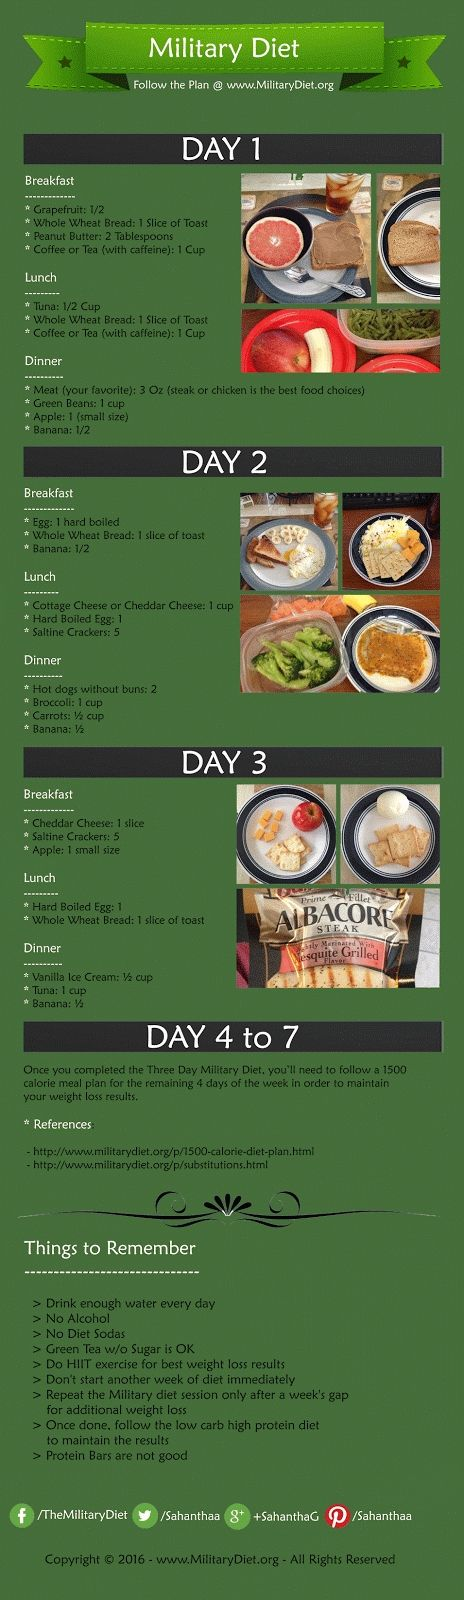 Follow The Military Diet Program to lose upto 10 pounds in three days. Find the complete 3 day military diet plan in this infographic for easy understanding. Save this military diet infographic to your device. #weightlosstips